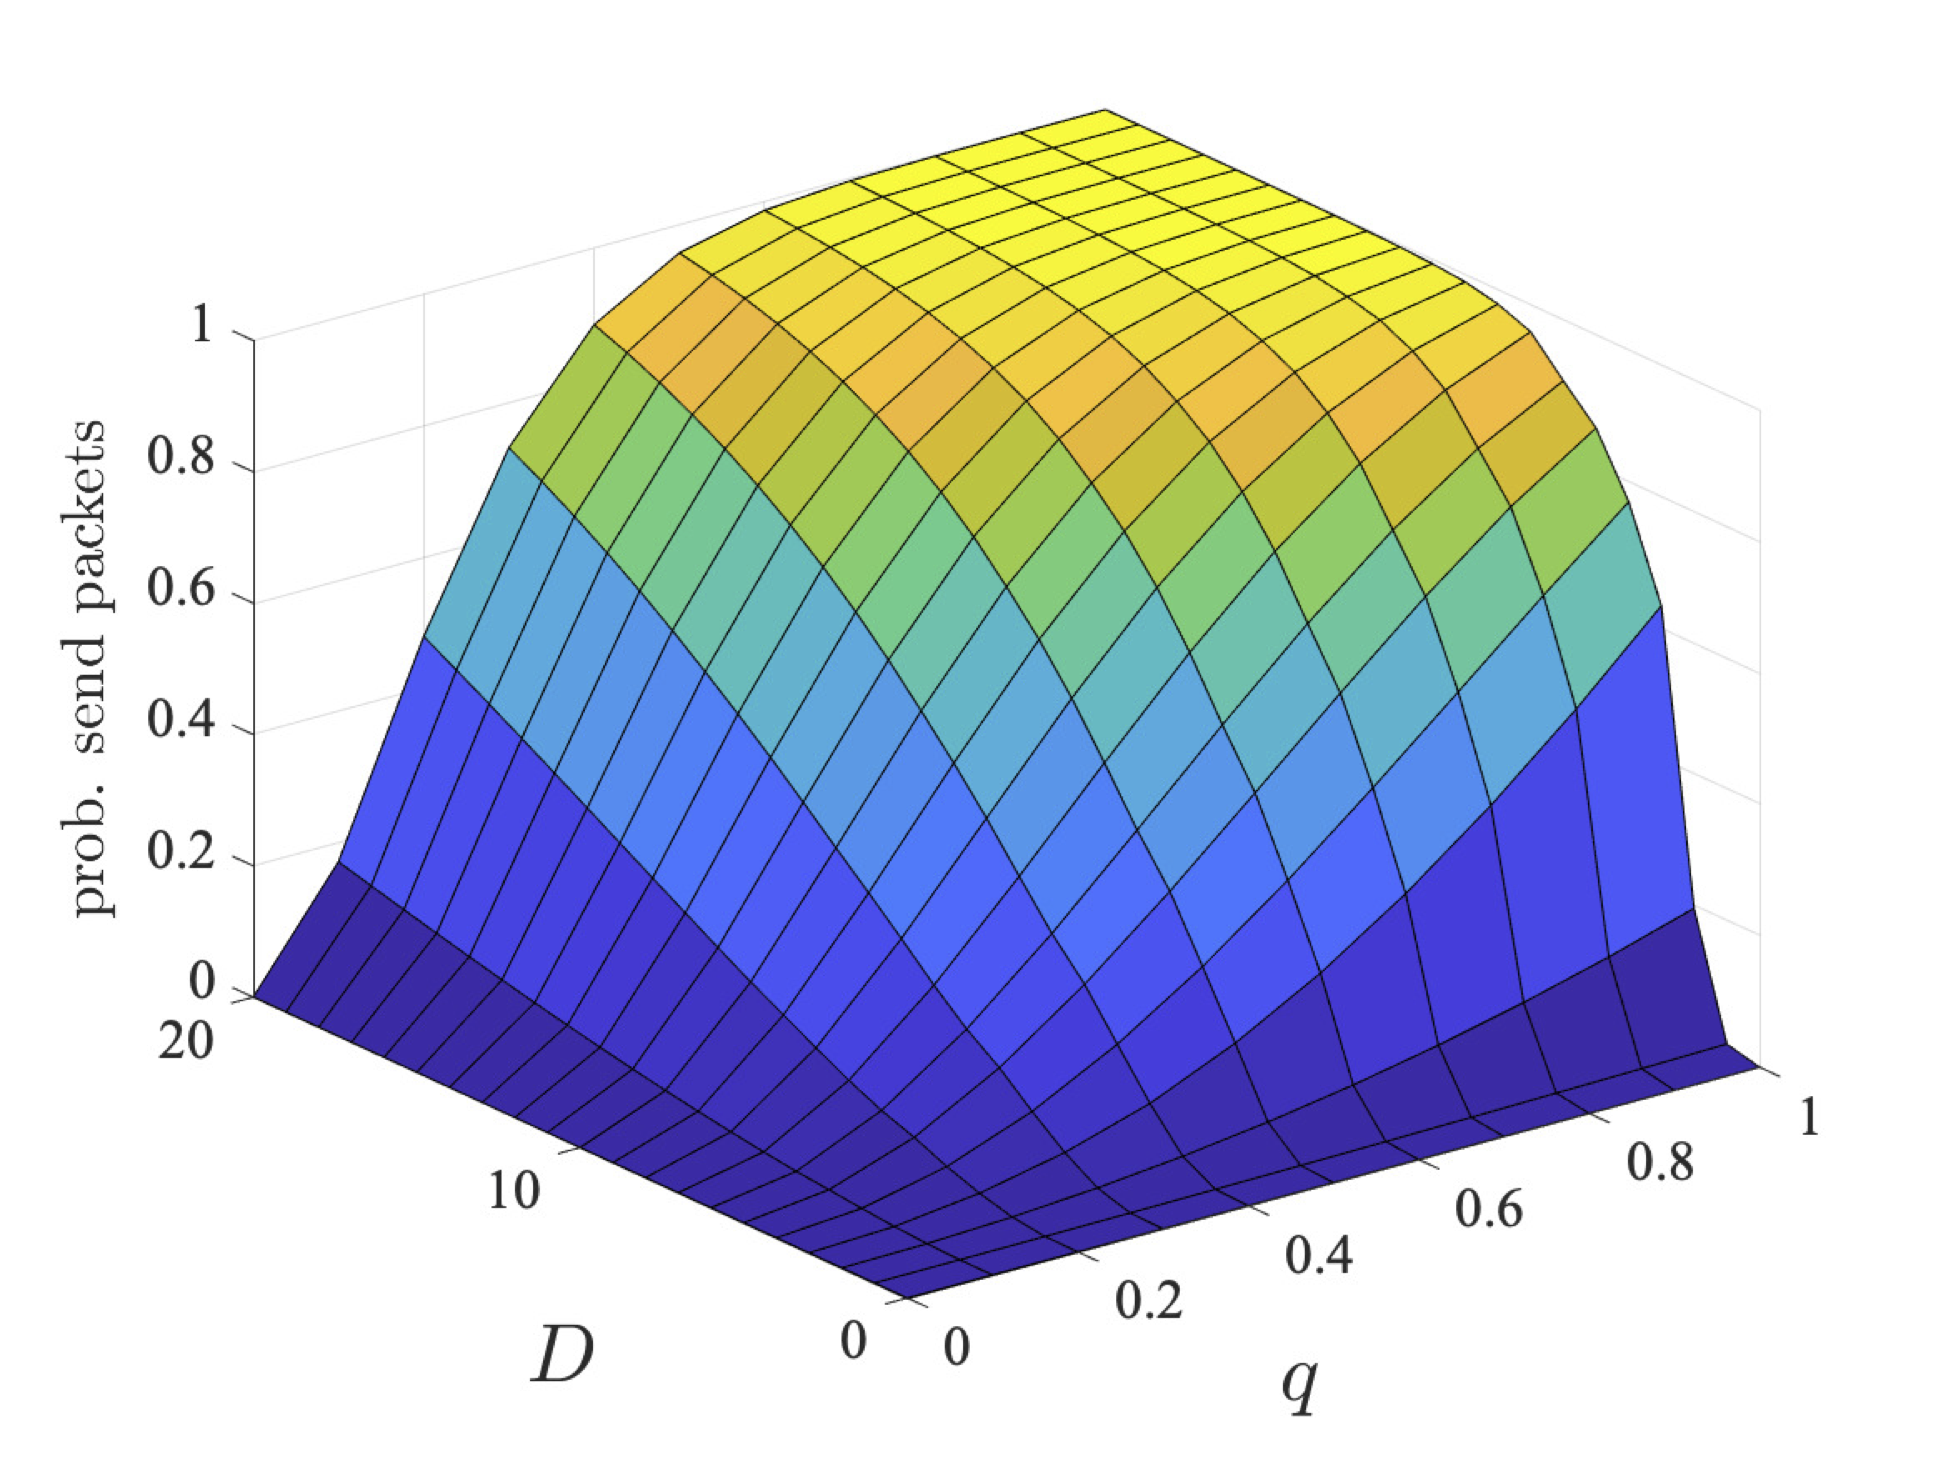 plot: maximum probability users 2 and 3 can ensure they send their packets within a deadline (bcmax=2)